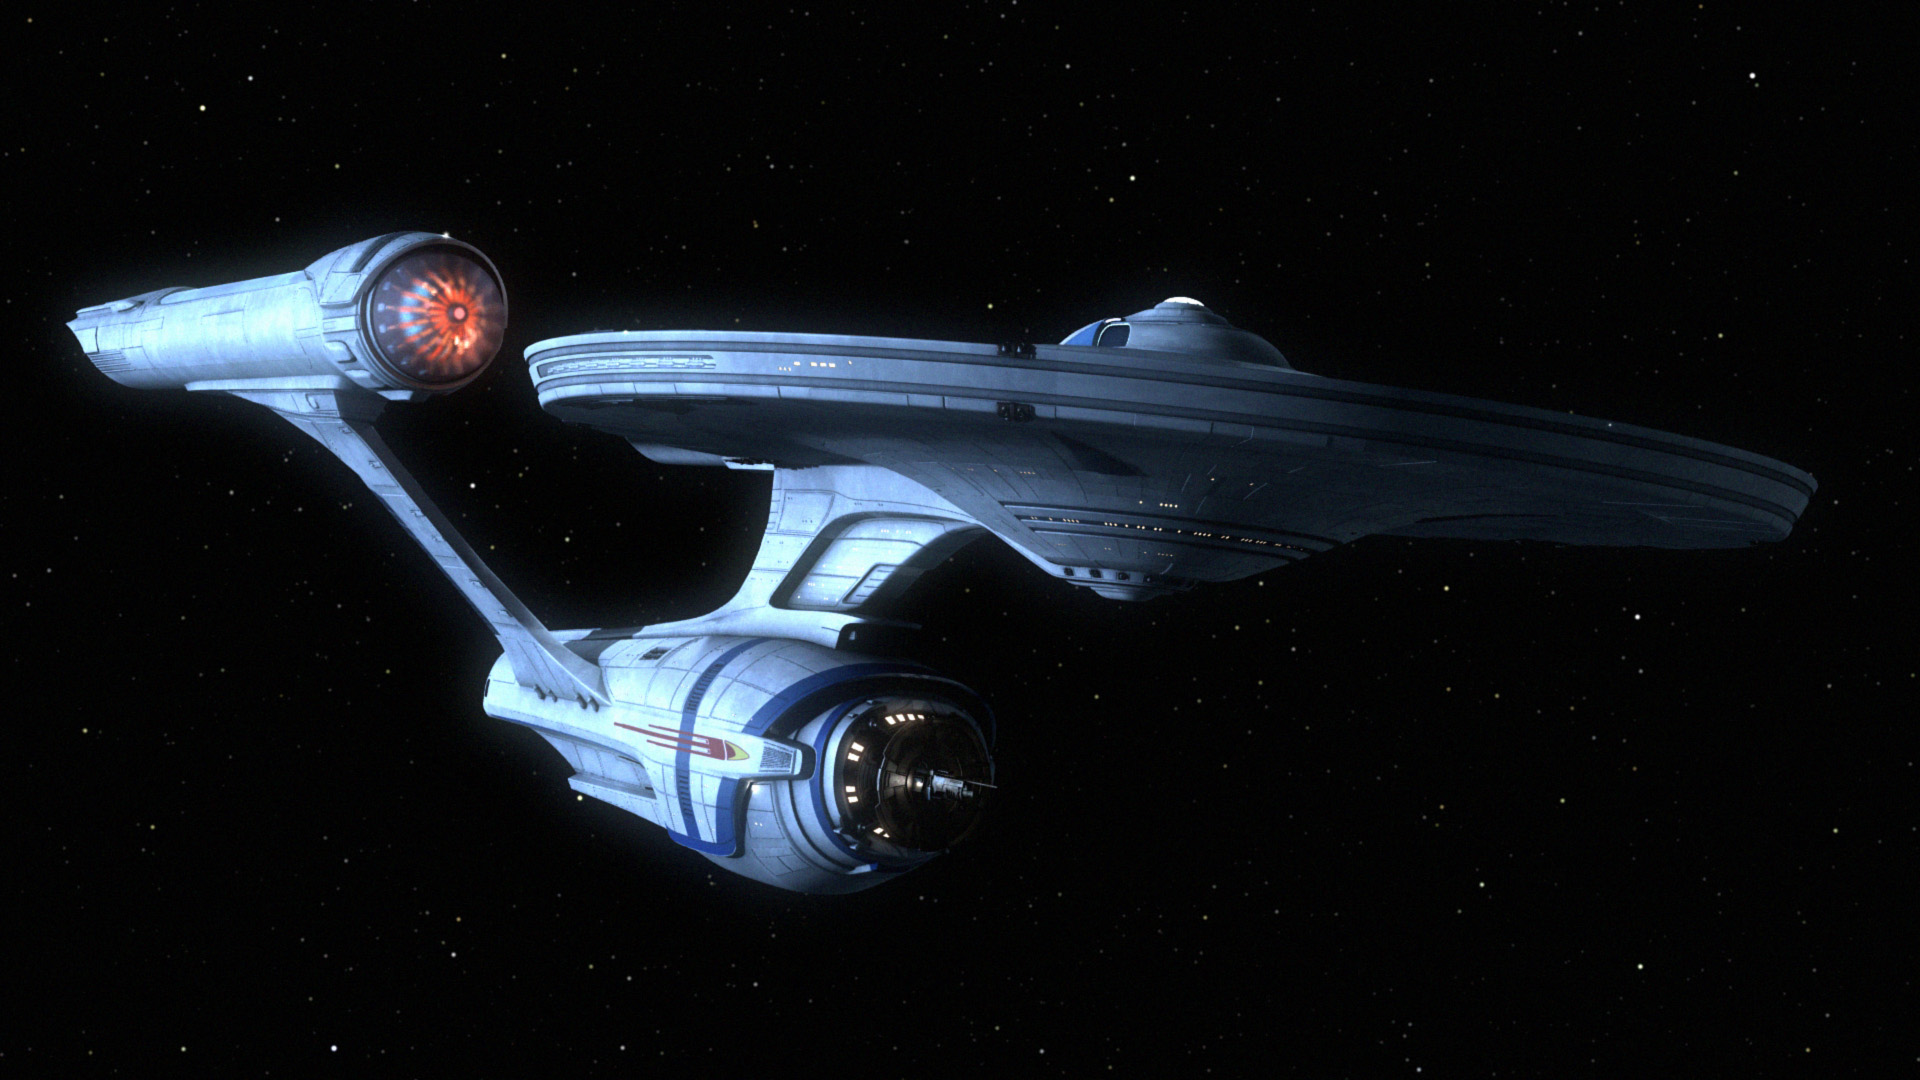 Star Trek Enterprise Wallpaper 1920x1080